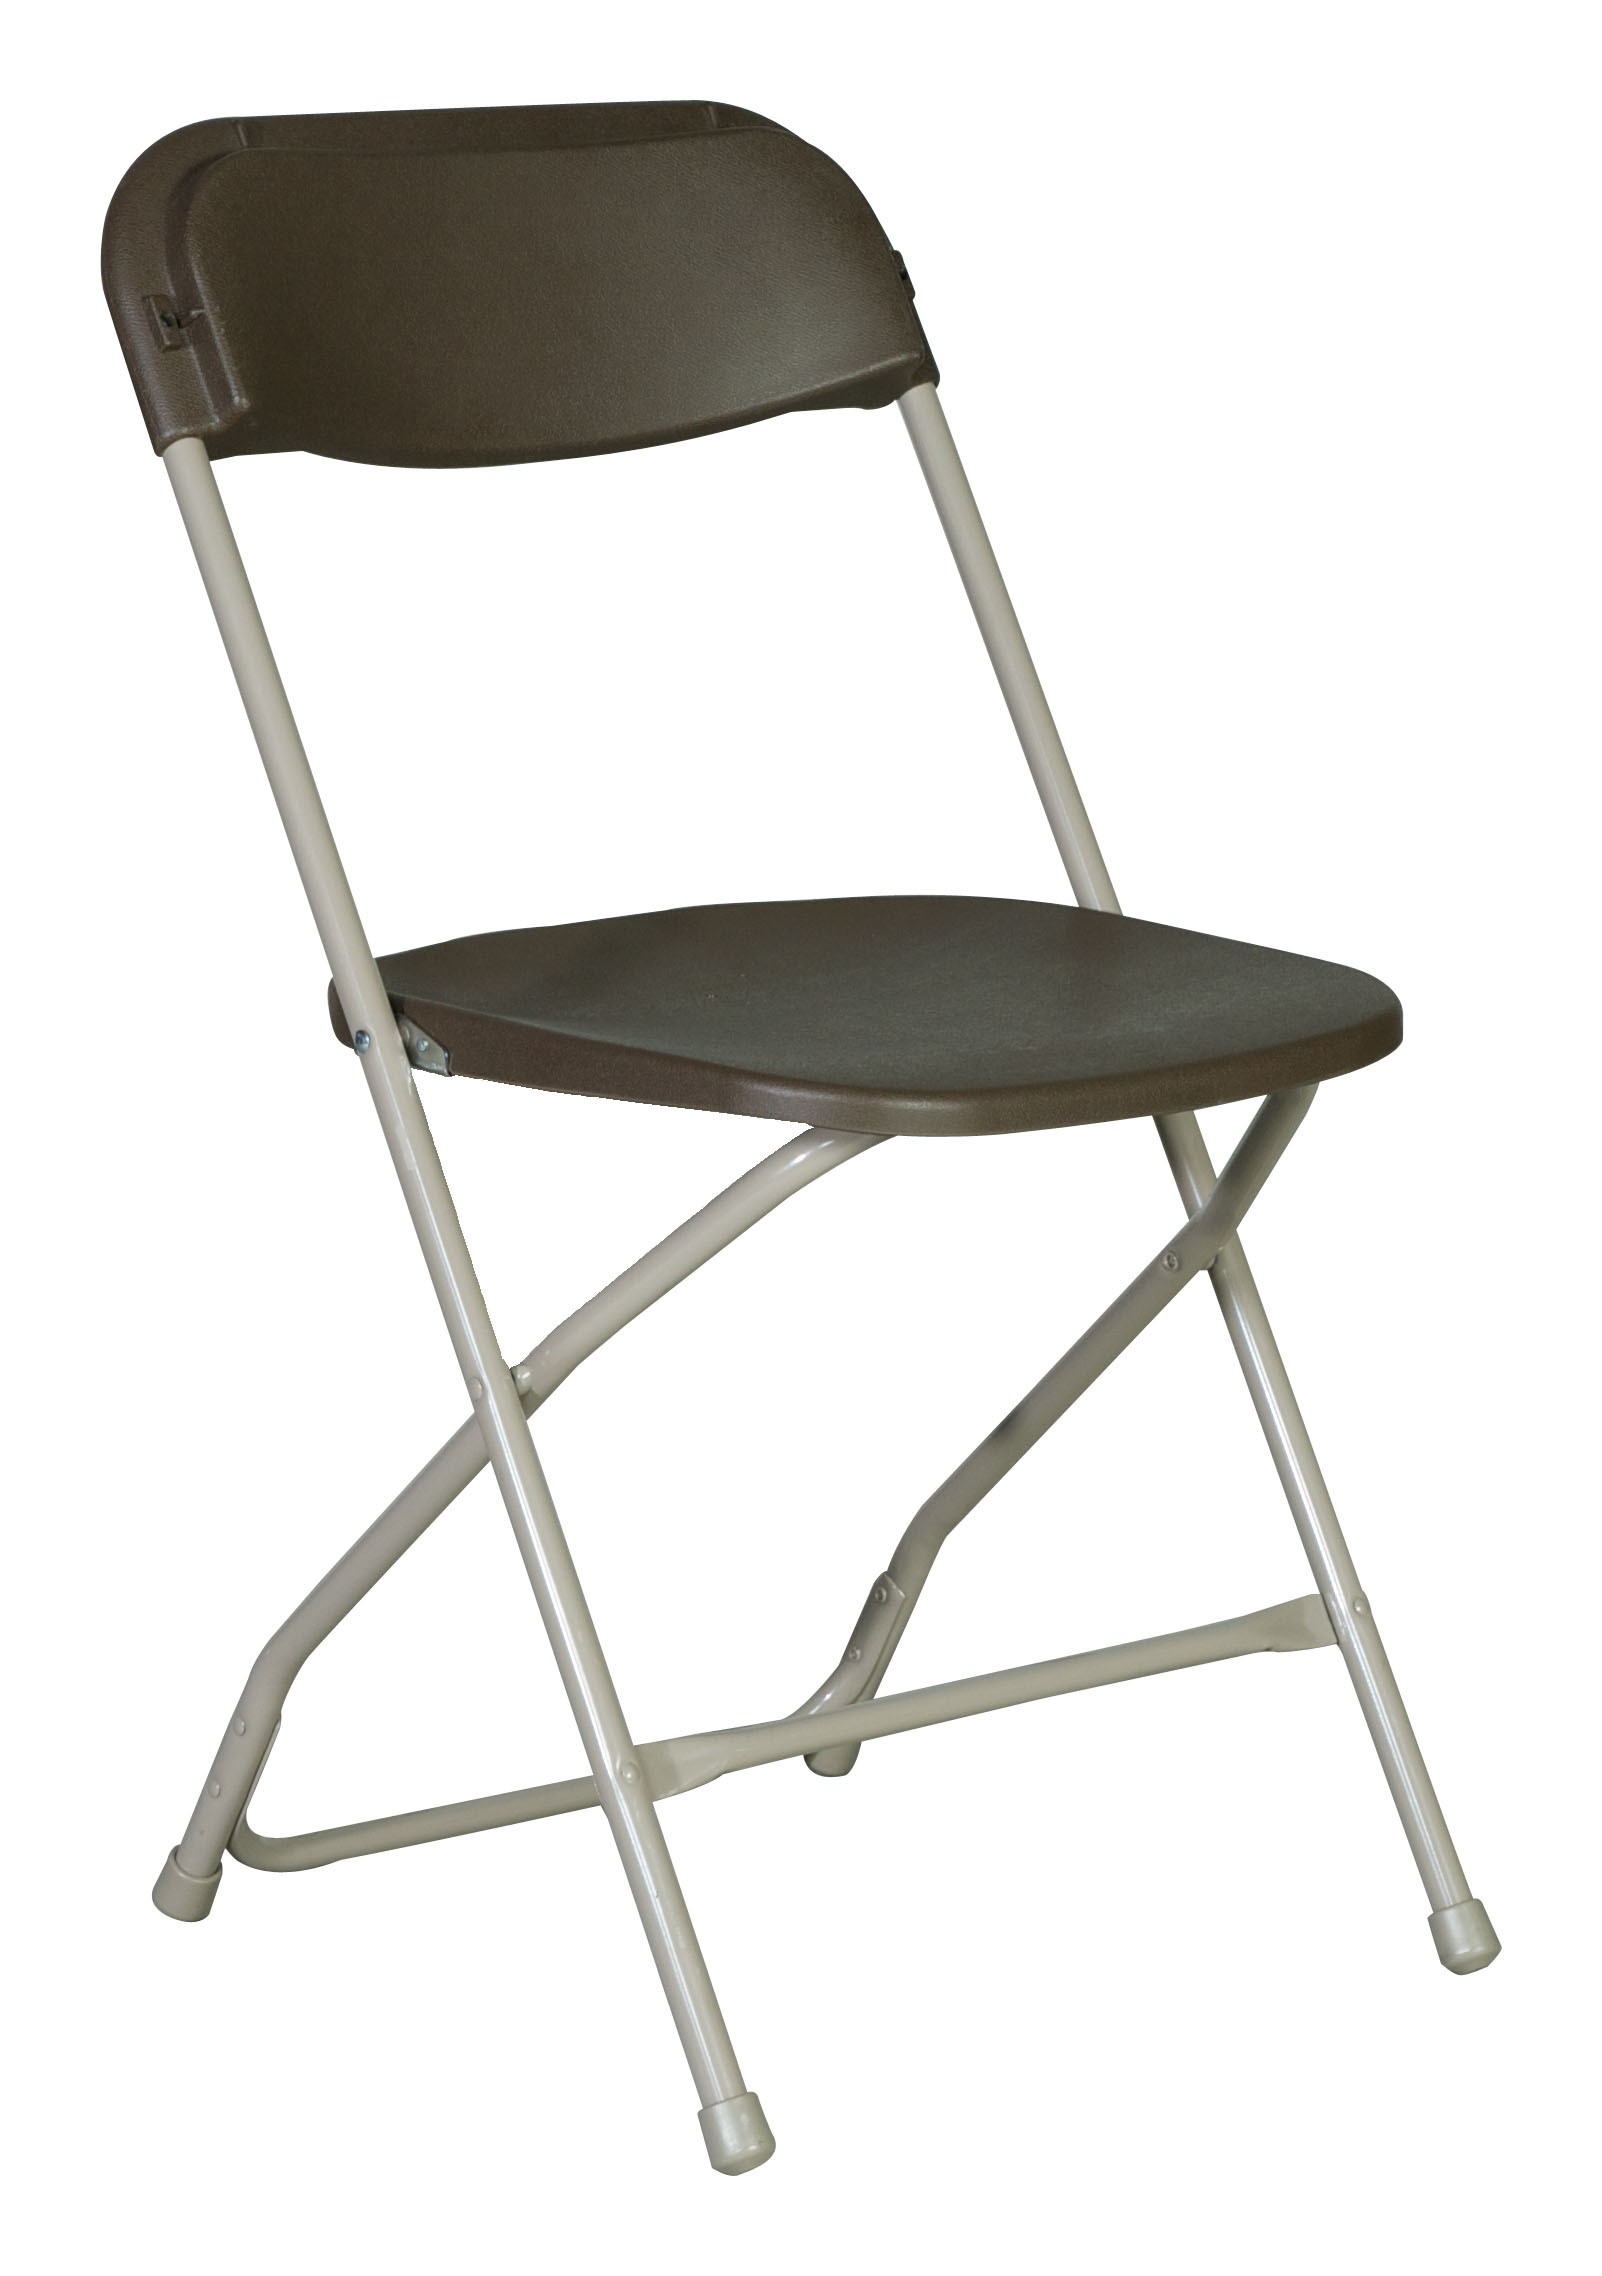 Exceptional Brown Plastic Folding Chair